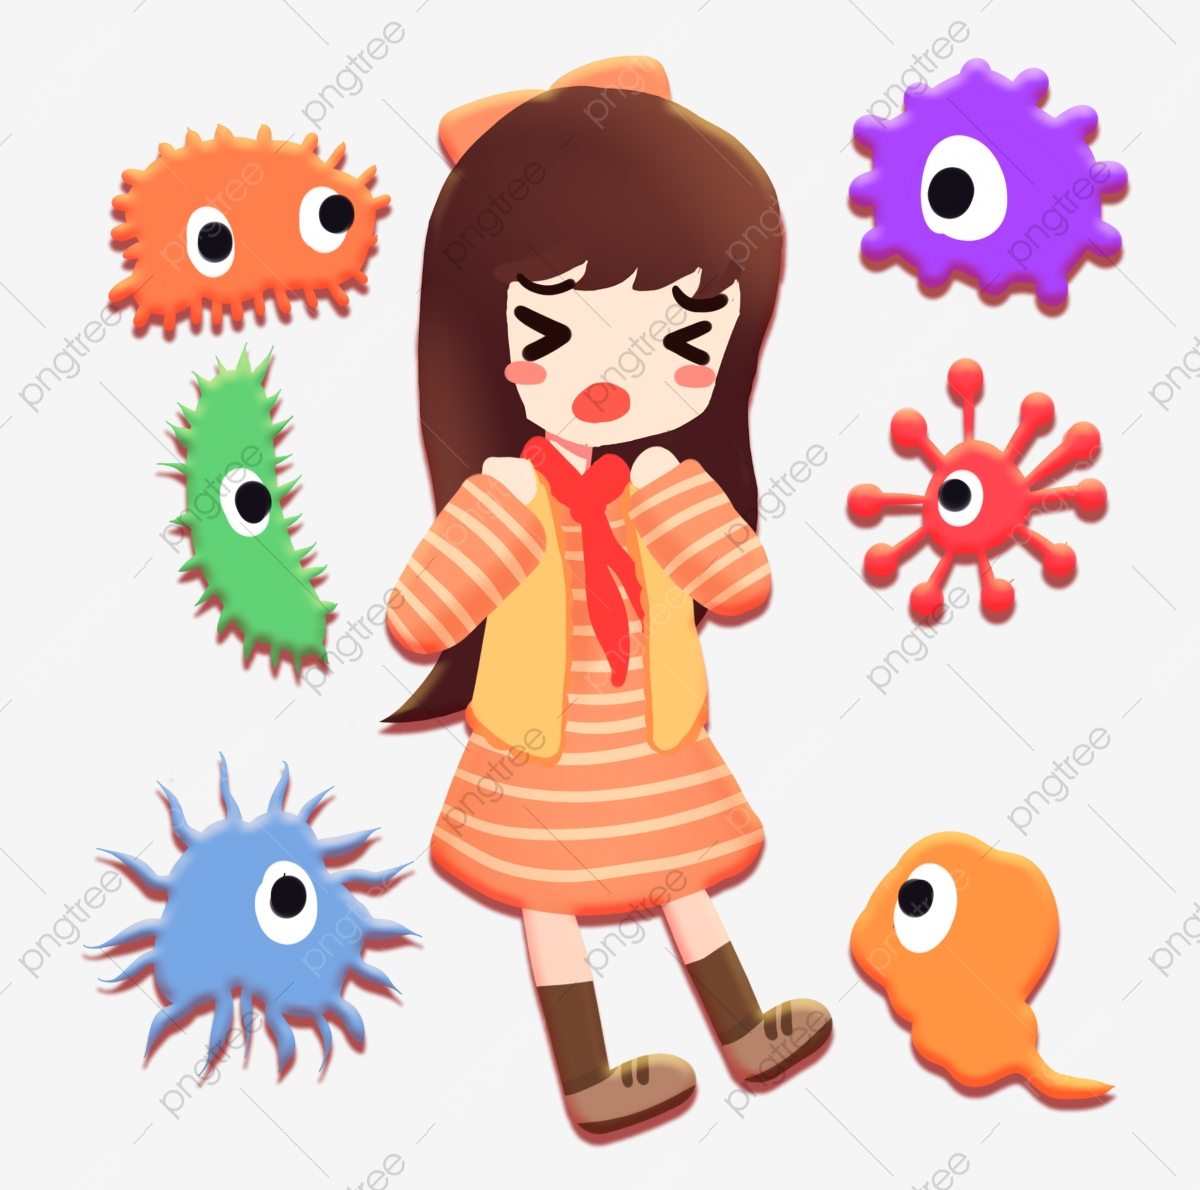 Girl Scared Of Bacteria Surrounded, Bacteria, Cartoon, Nuclear PNG  Transparent Clipart Image and PSD File for Free Download